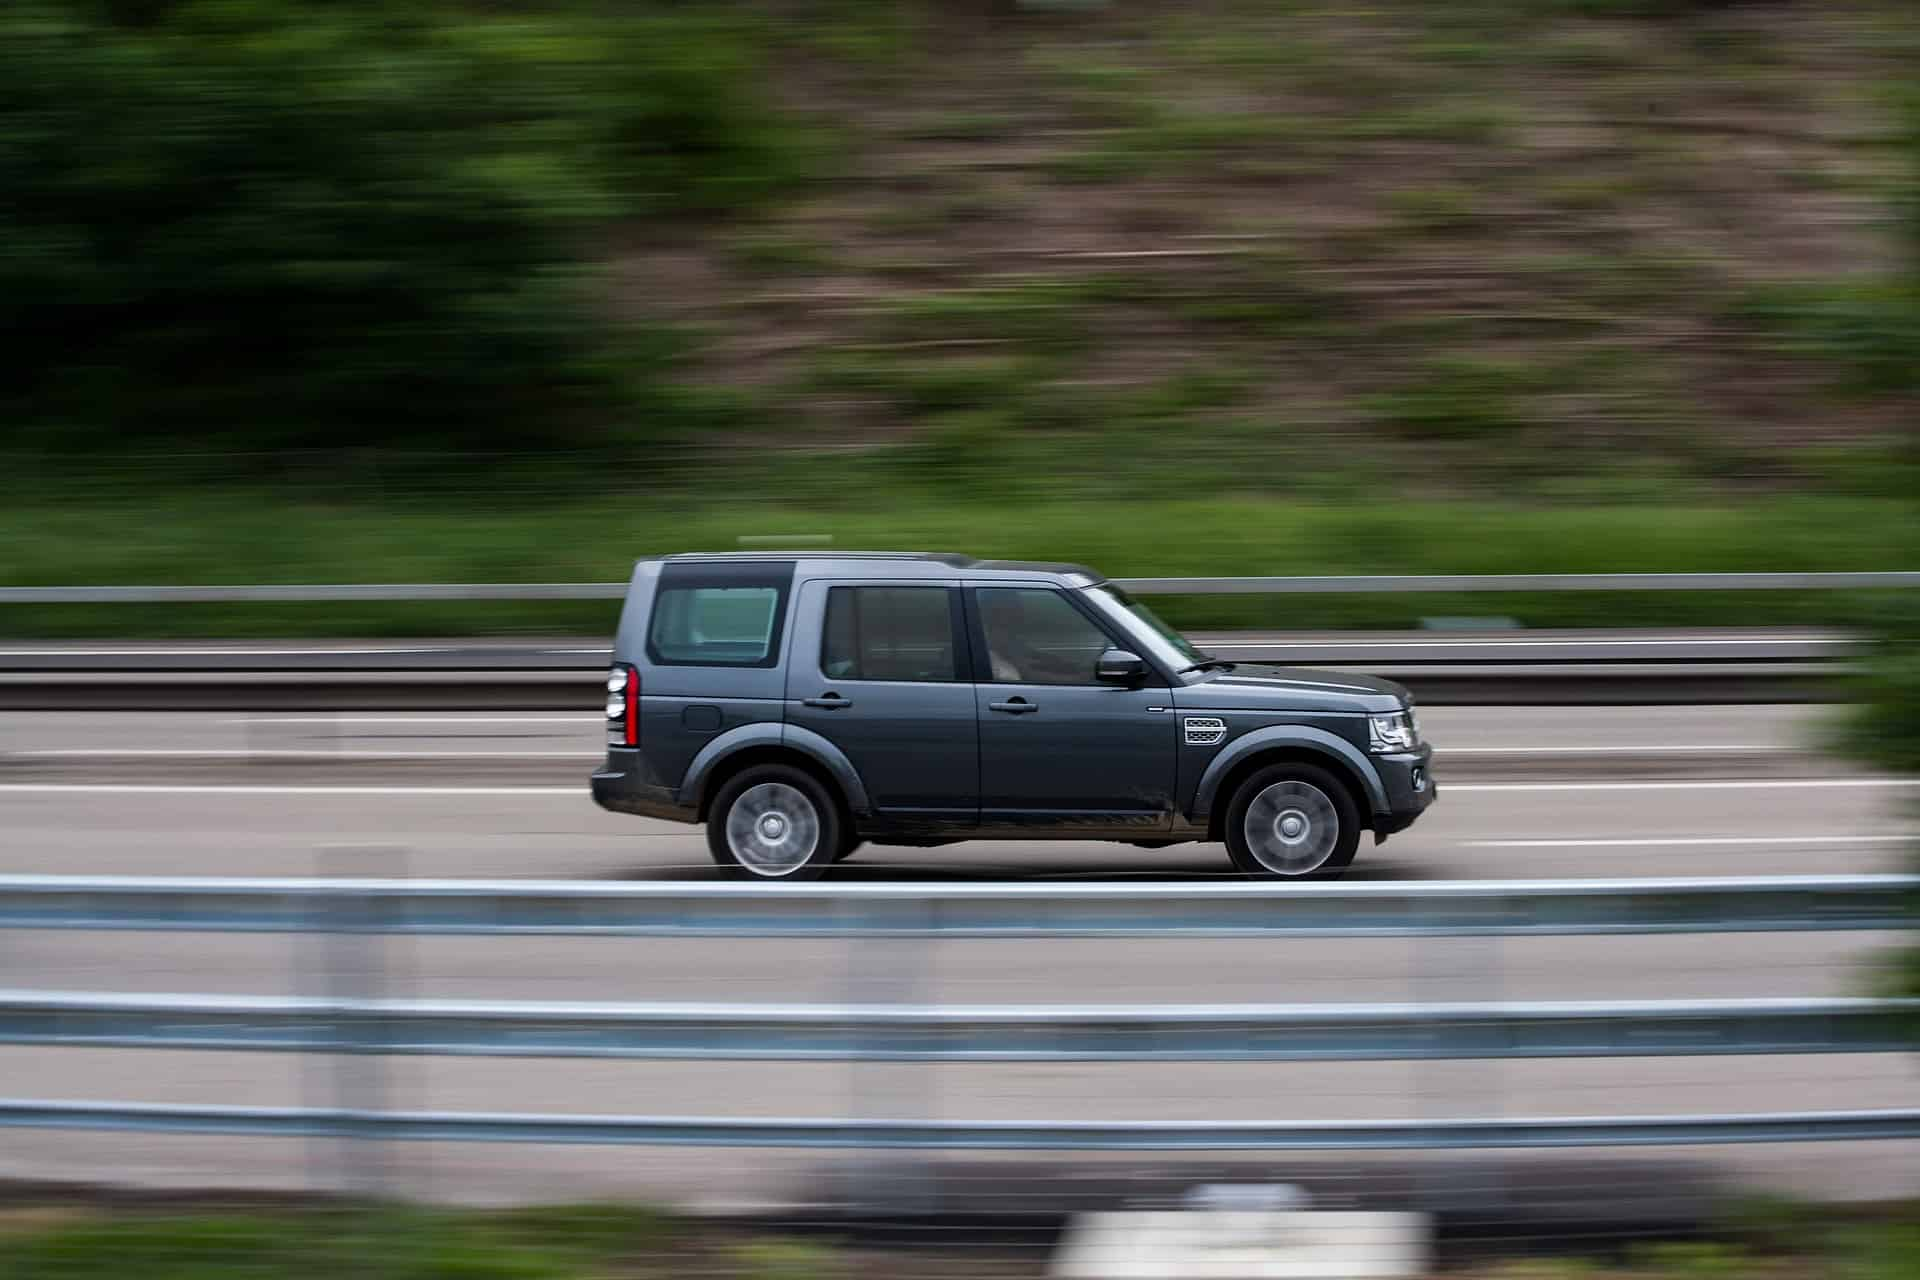 Reasons To Purchase An SUV- How Is SUV A Boon